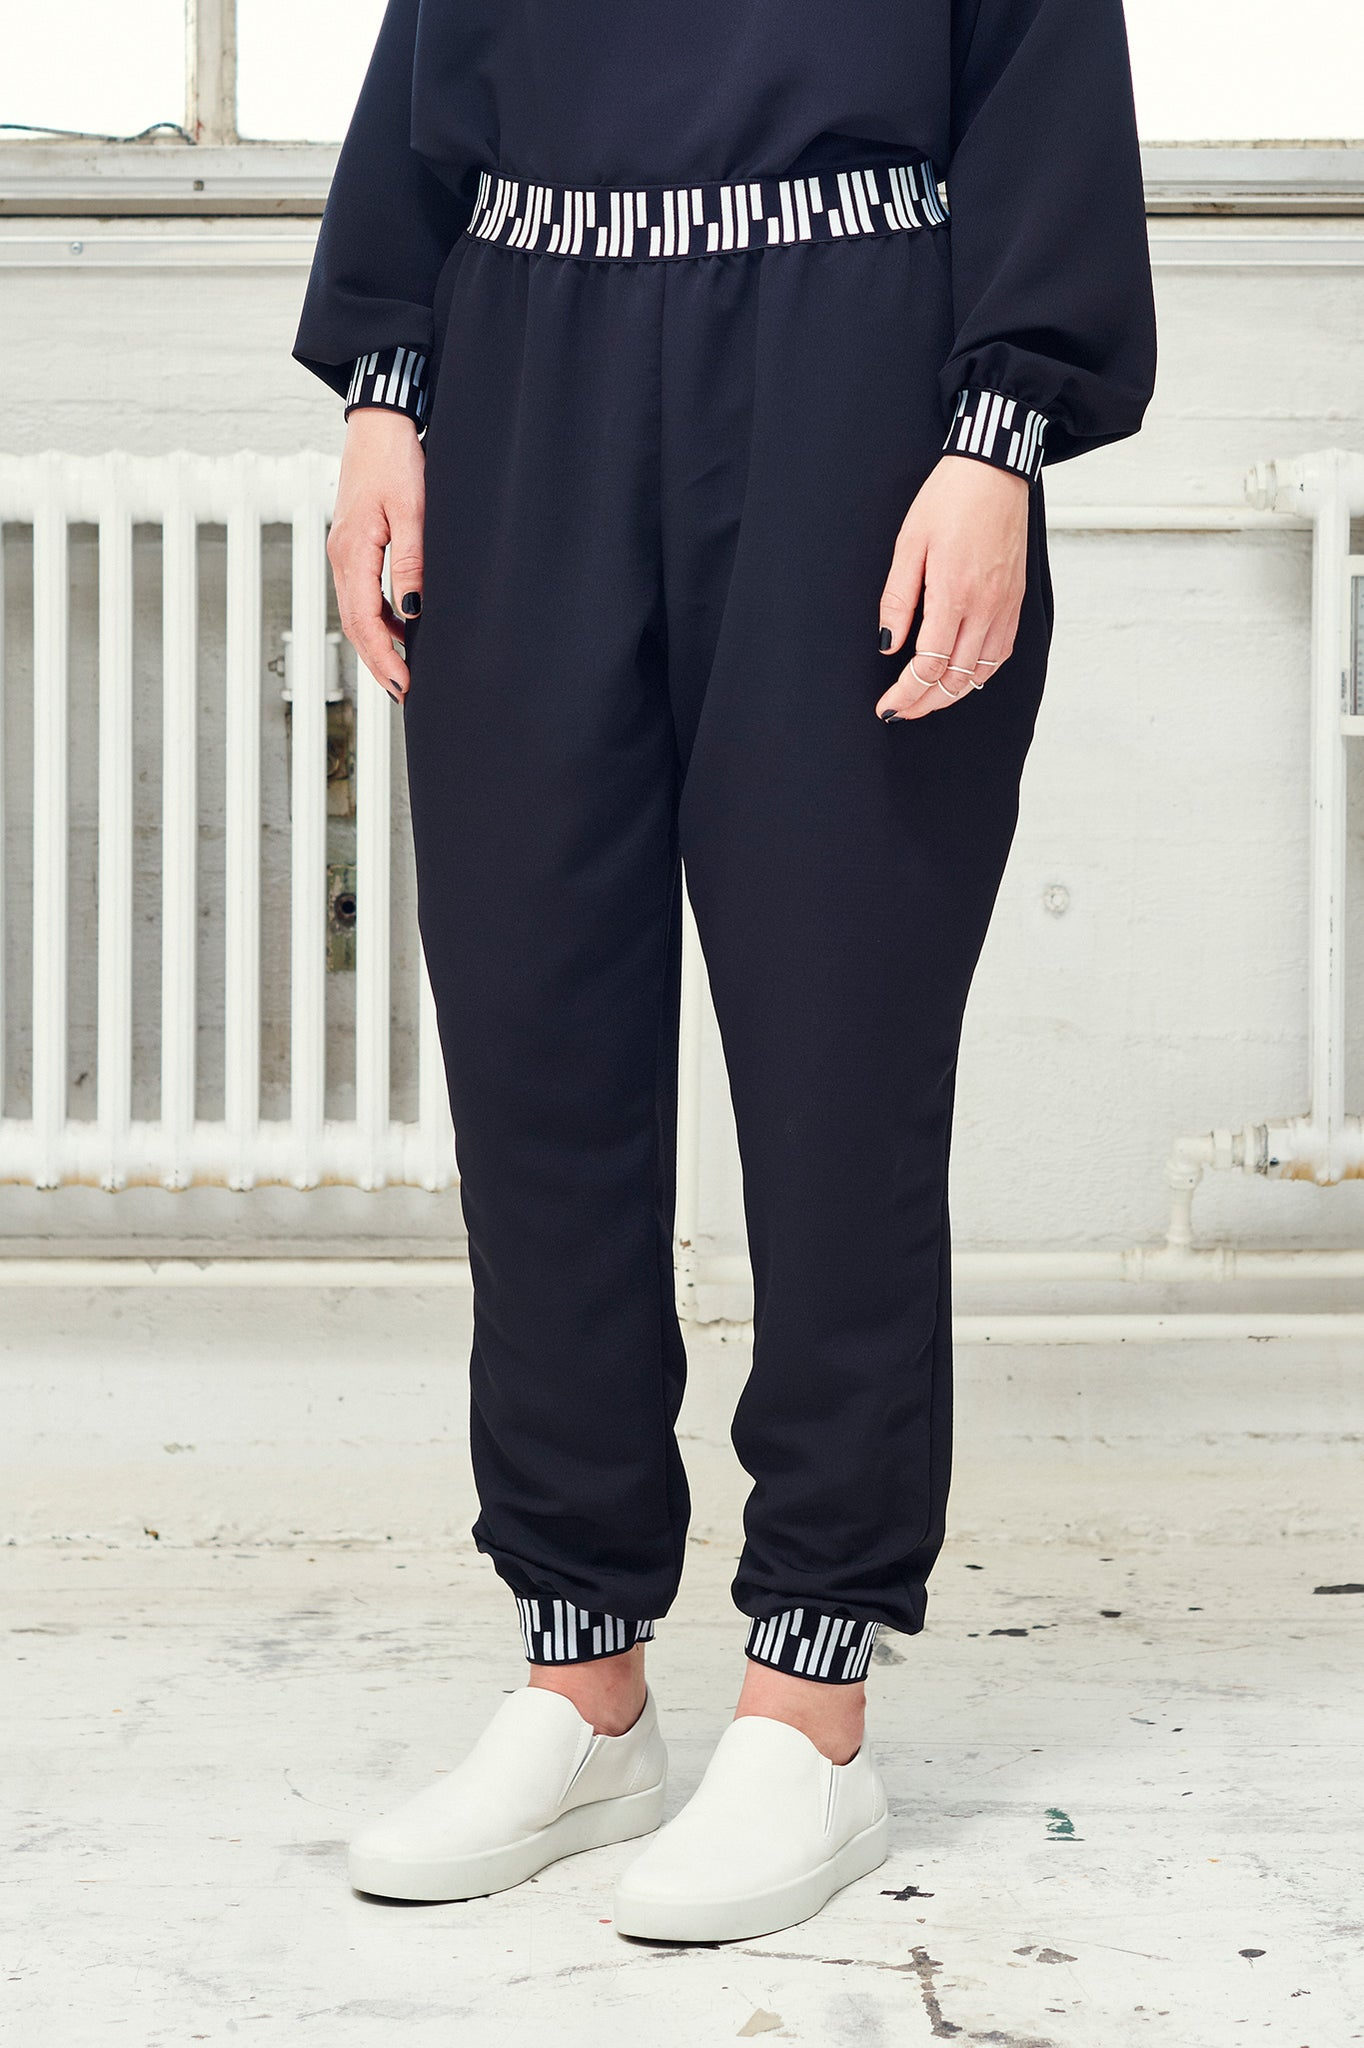 Light Loose Pants (black)